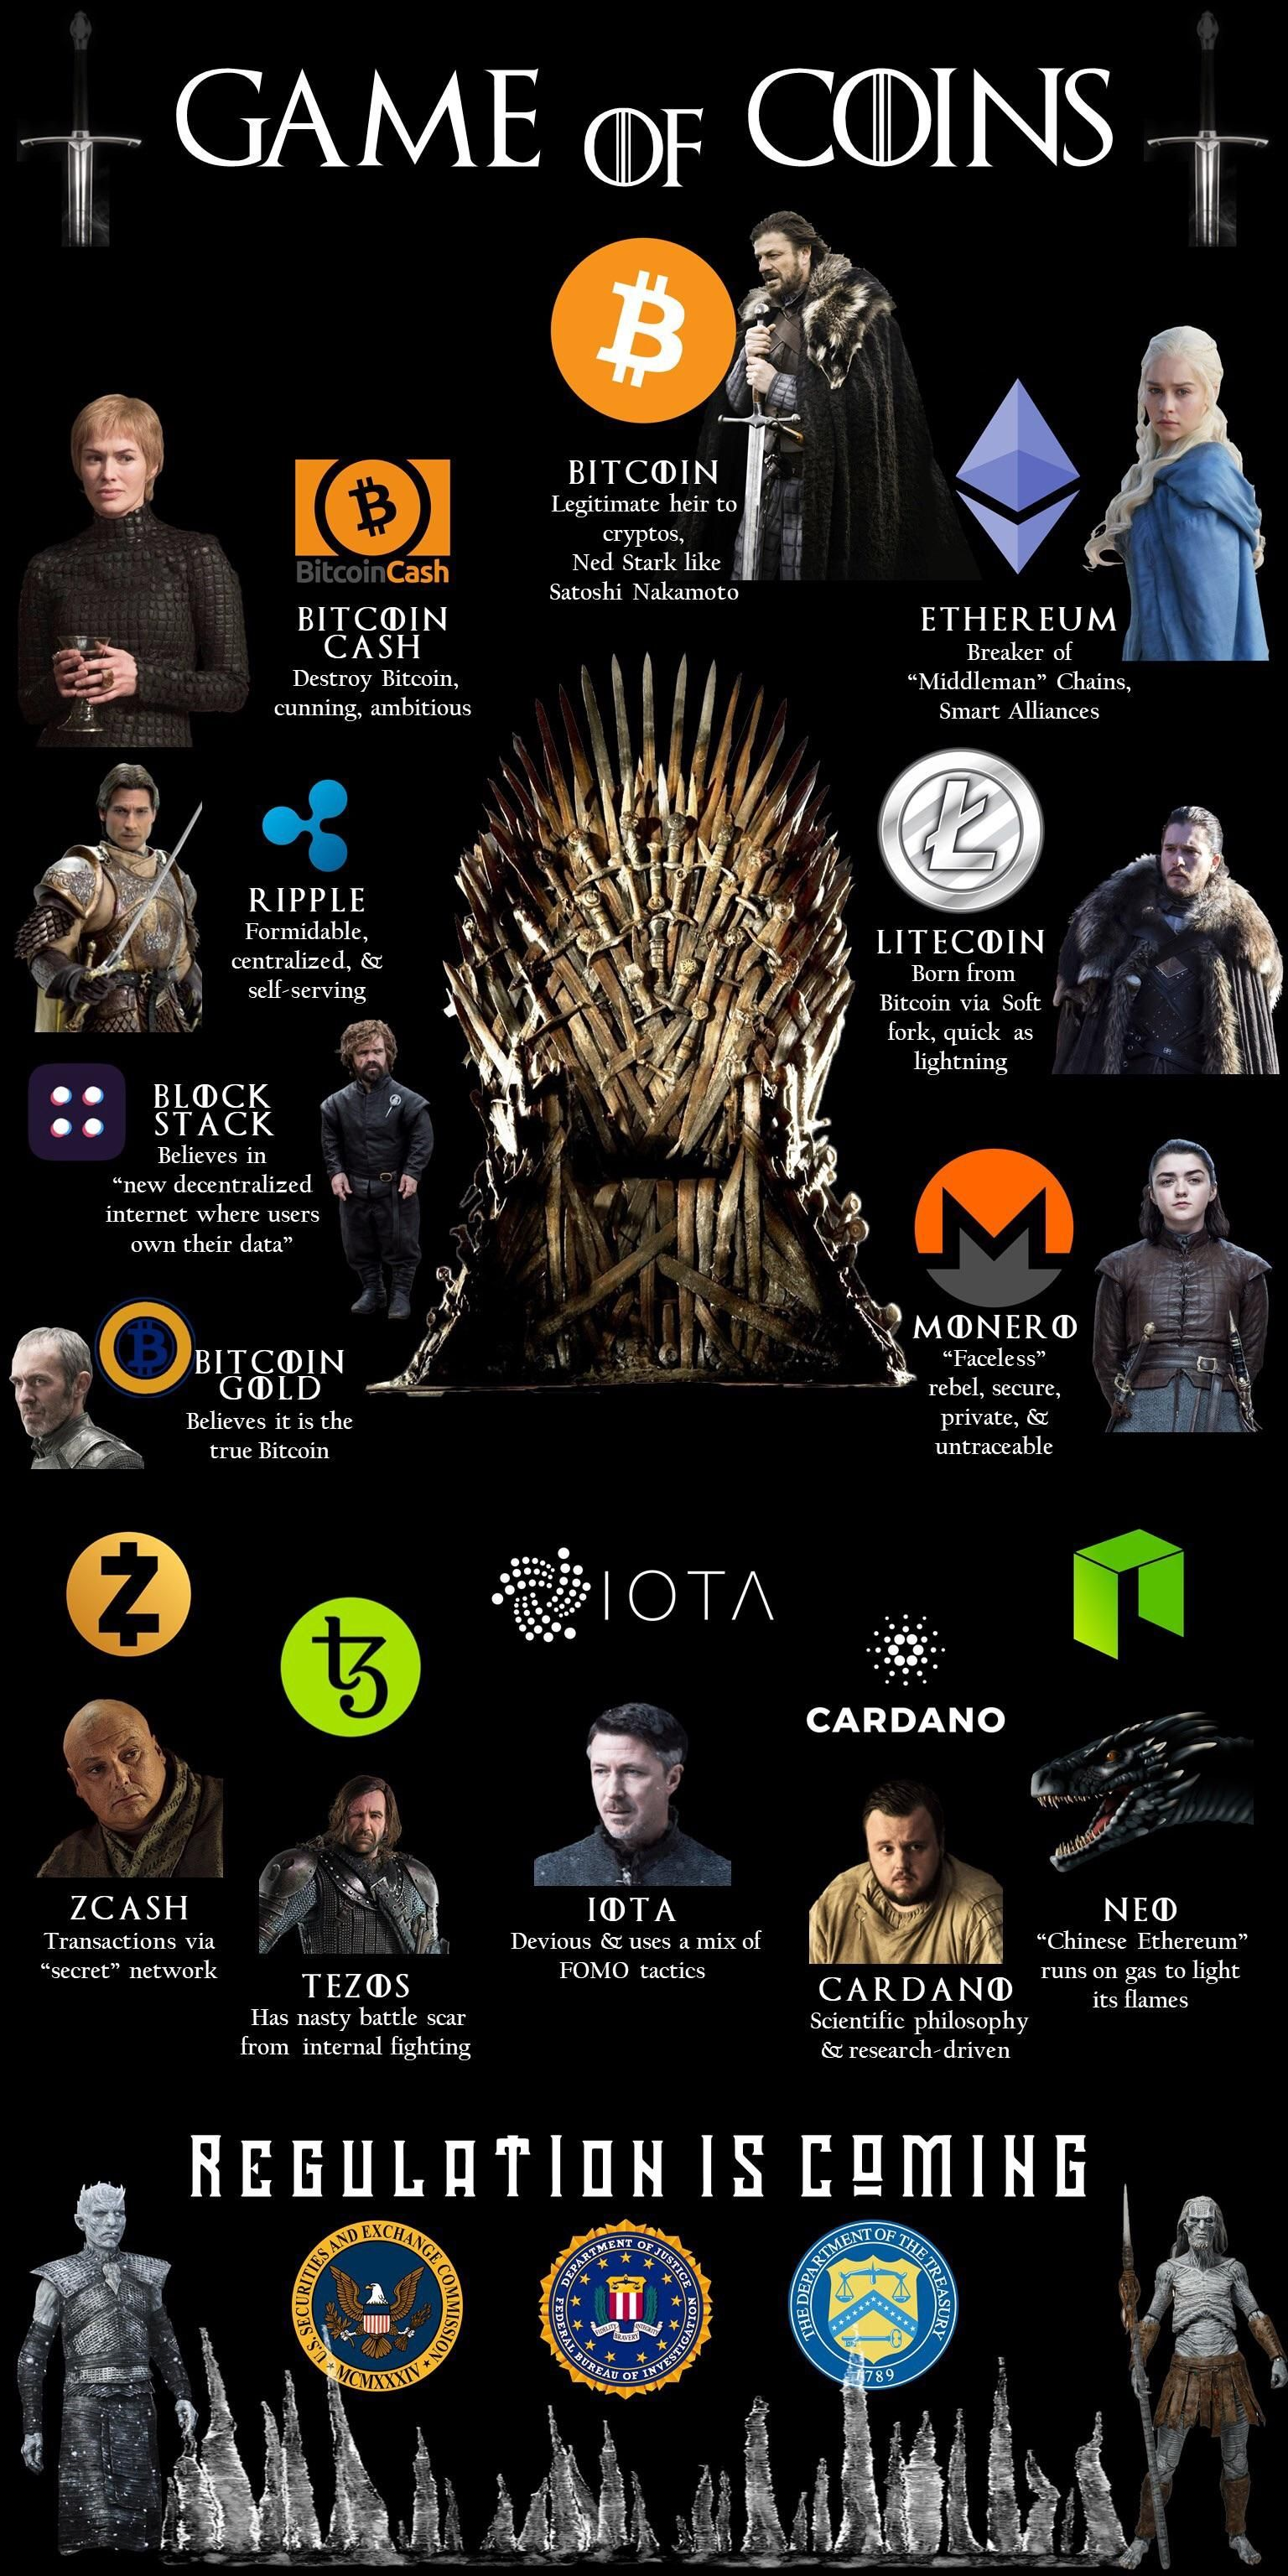 Game of coins Cryptocurrency, Investing in